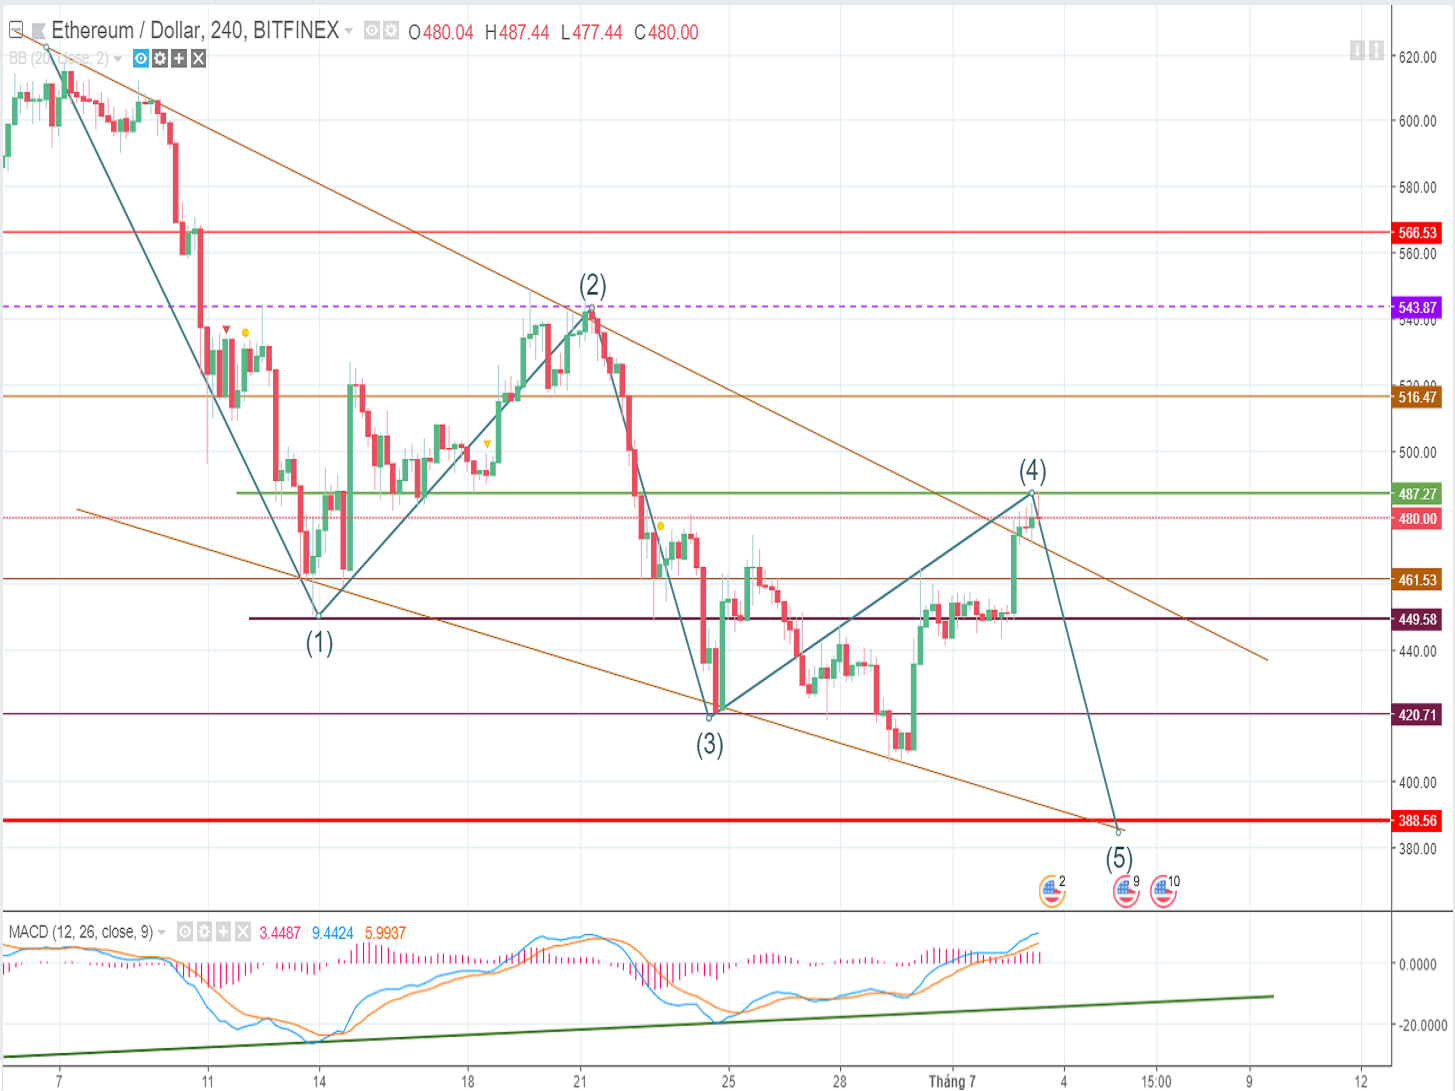 ETH price analysis and forecast on Tuesday (July 3rd): Bearish momentum is becoming weaker